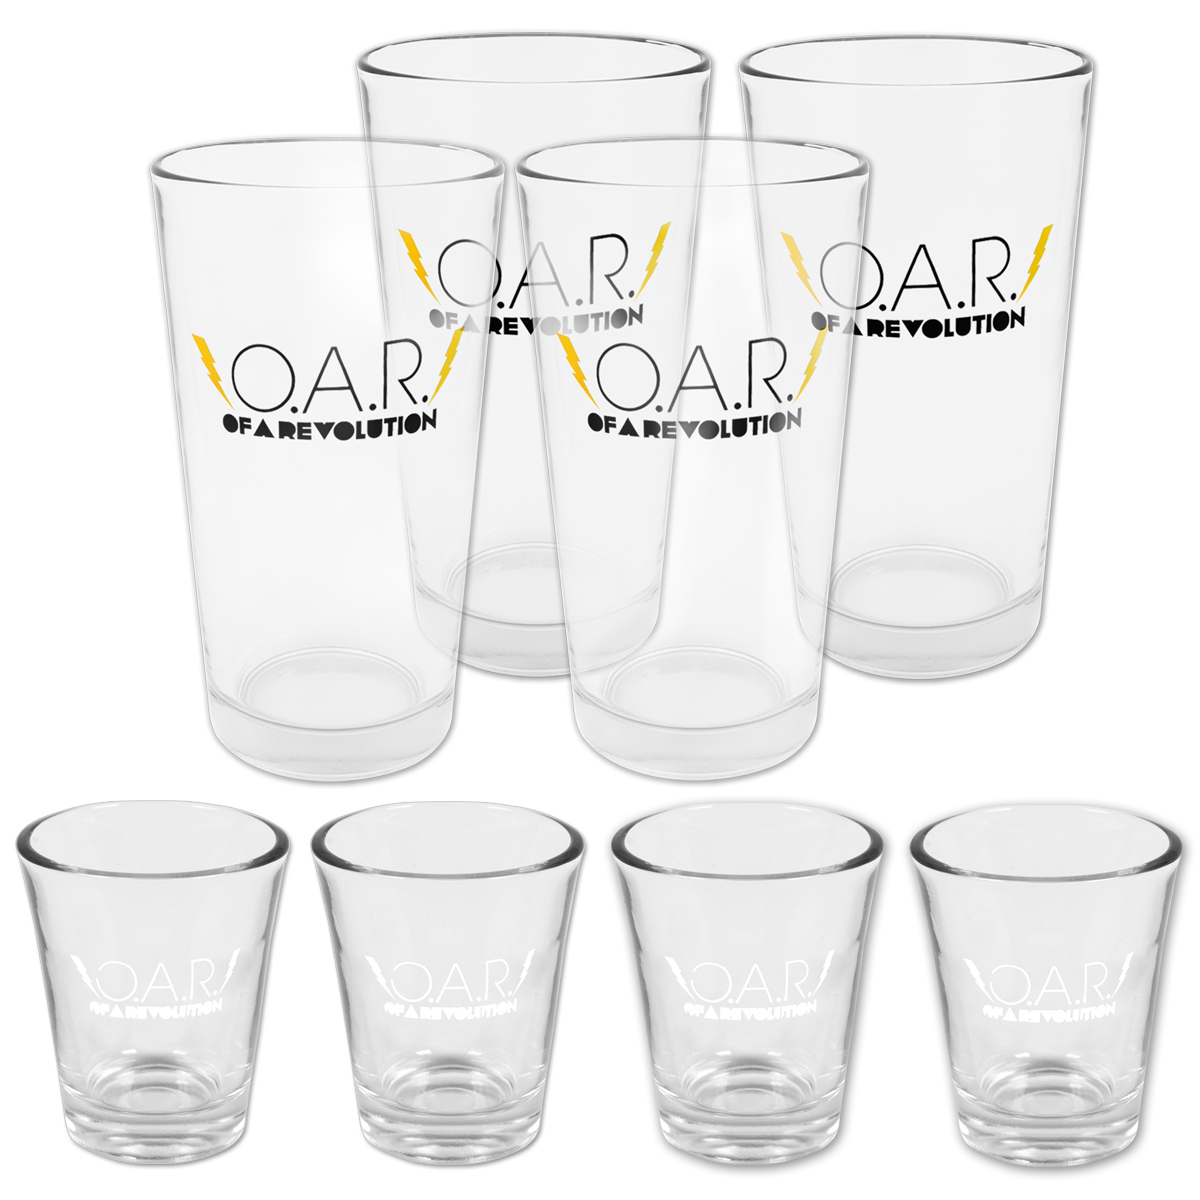 O.A.R. Lightning Bolt 1.75oz Shot Glass and 16oz Pint Glass bundle (8 total items)